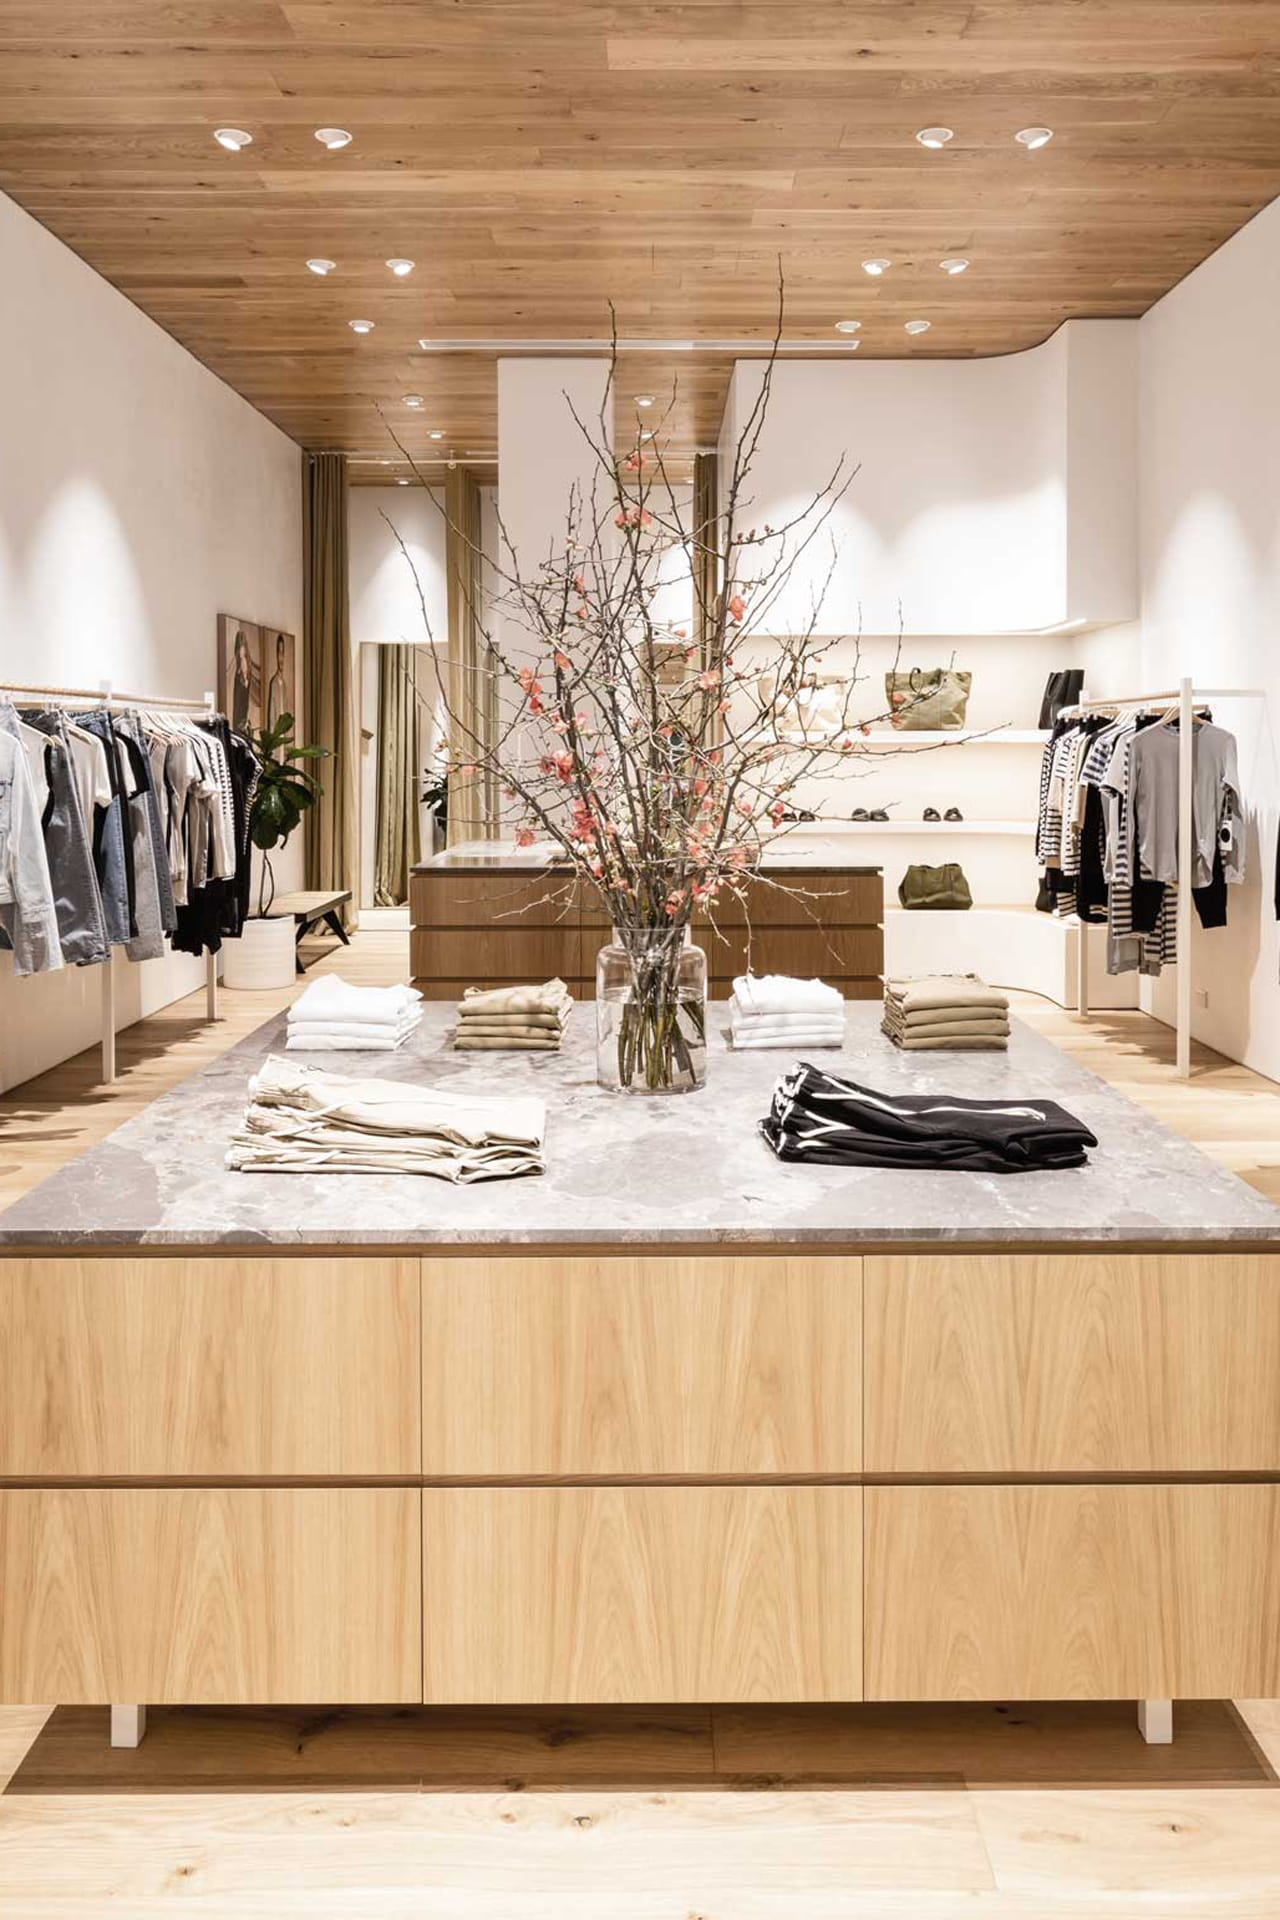 Inside Bassike's new Melbourne Emporium store. Image credit: Supplied